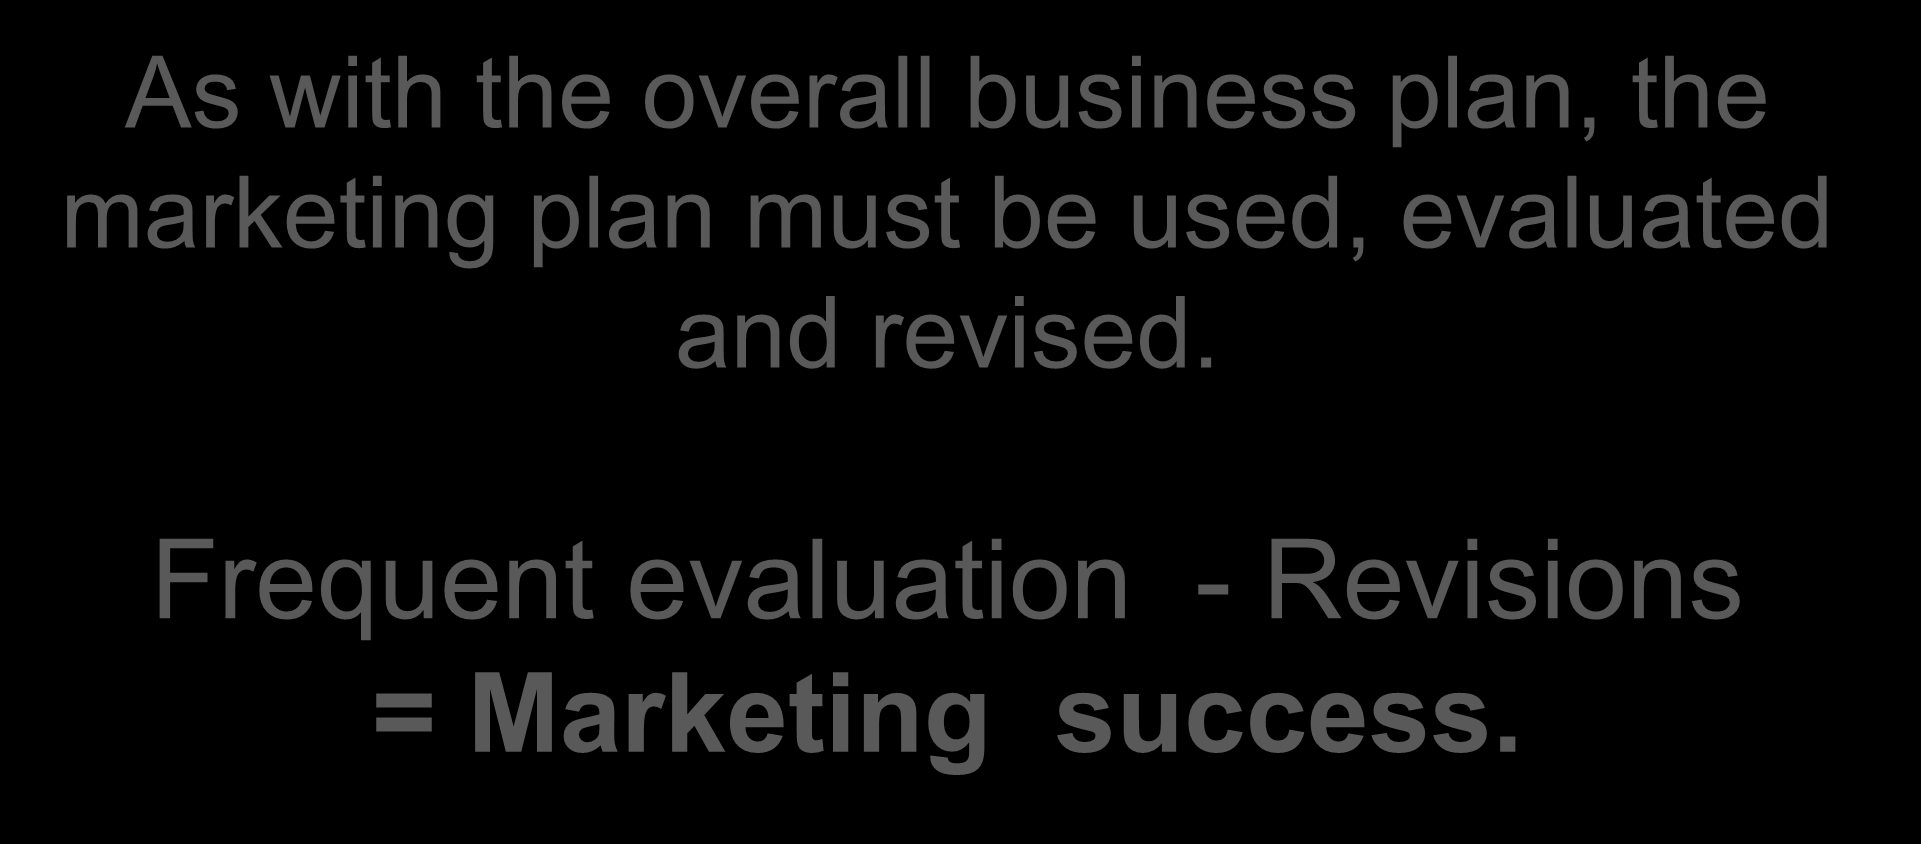 Summary - Marketing Plan Outline As with the overall business plan, the marketing plan